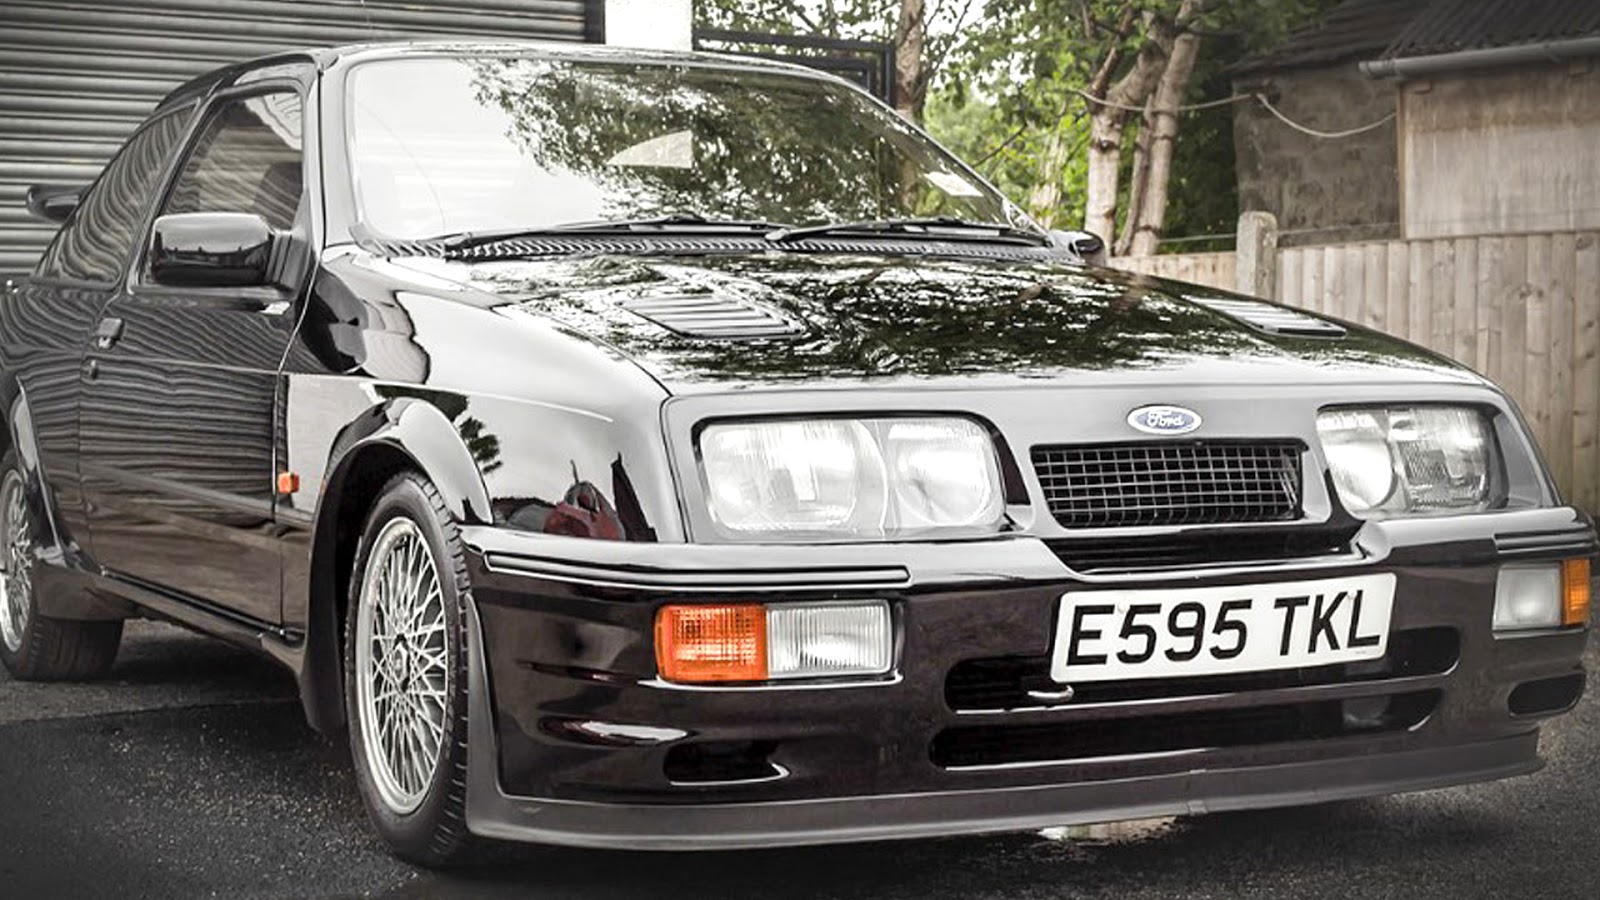 Ford Sierra Cosworth RS500 is sold with only 17,000 kilometers